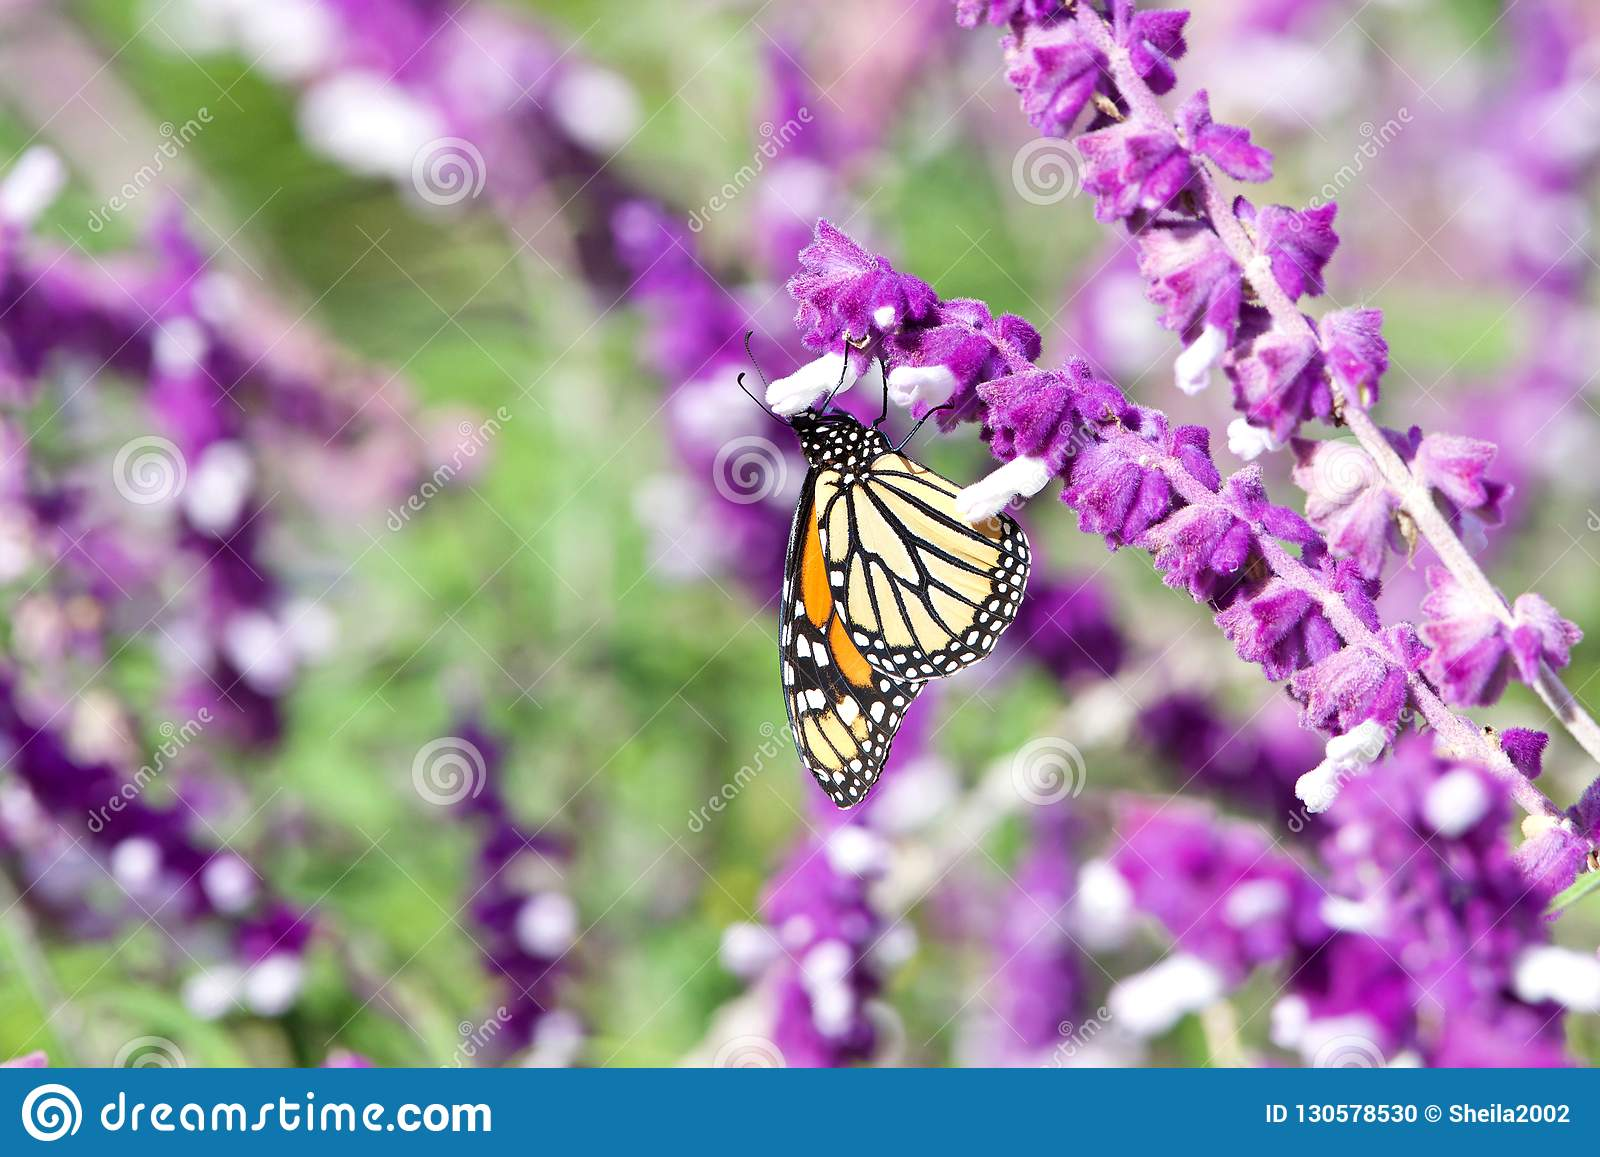 Monarch Butterfly drinking from Mexican Sage